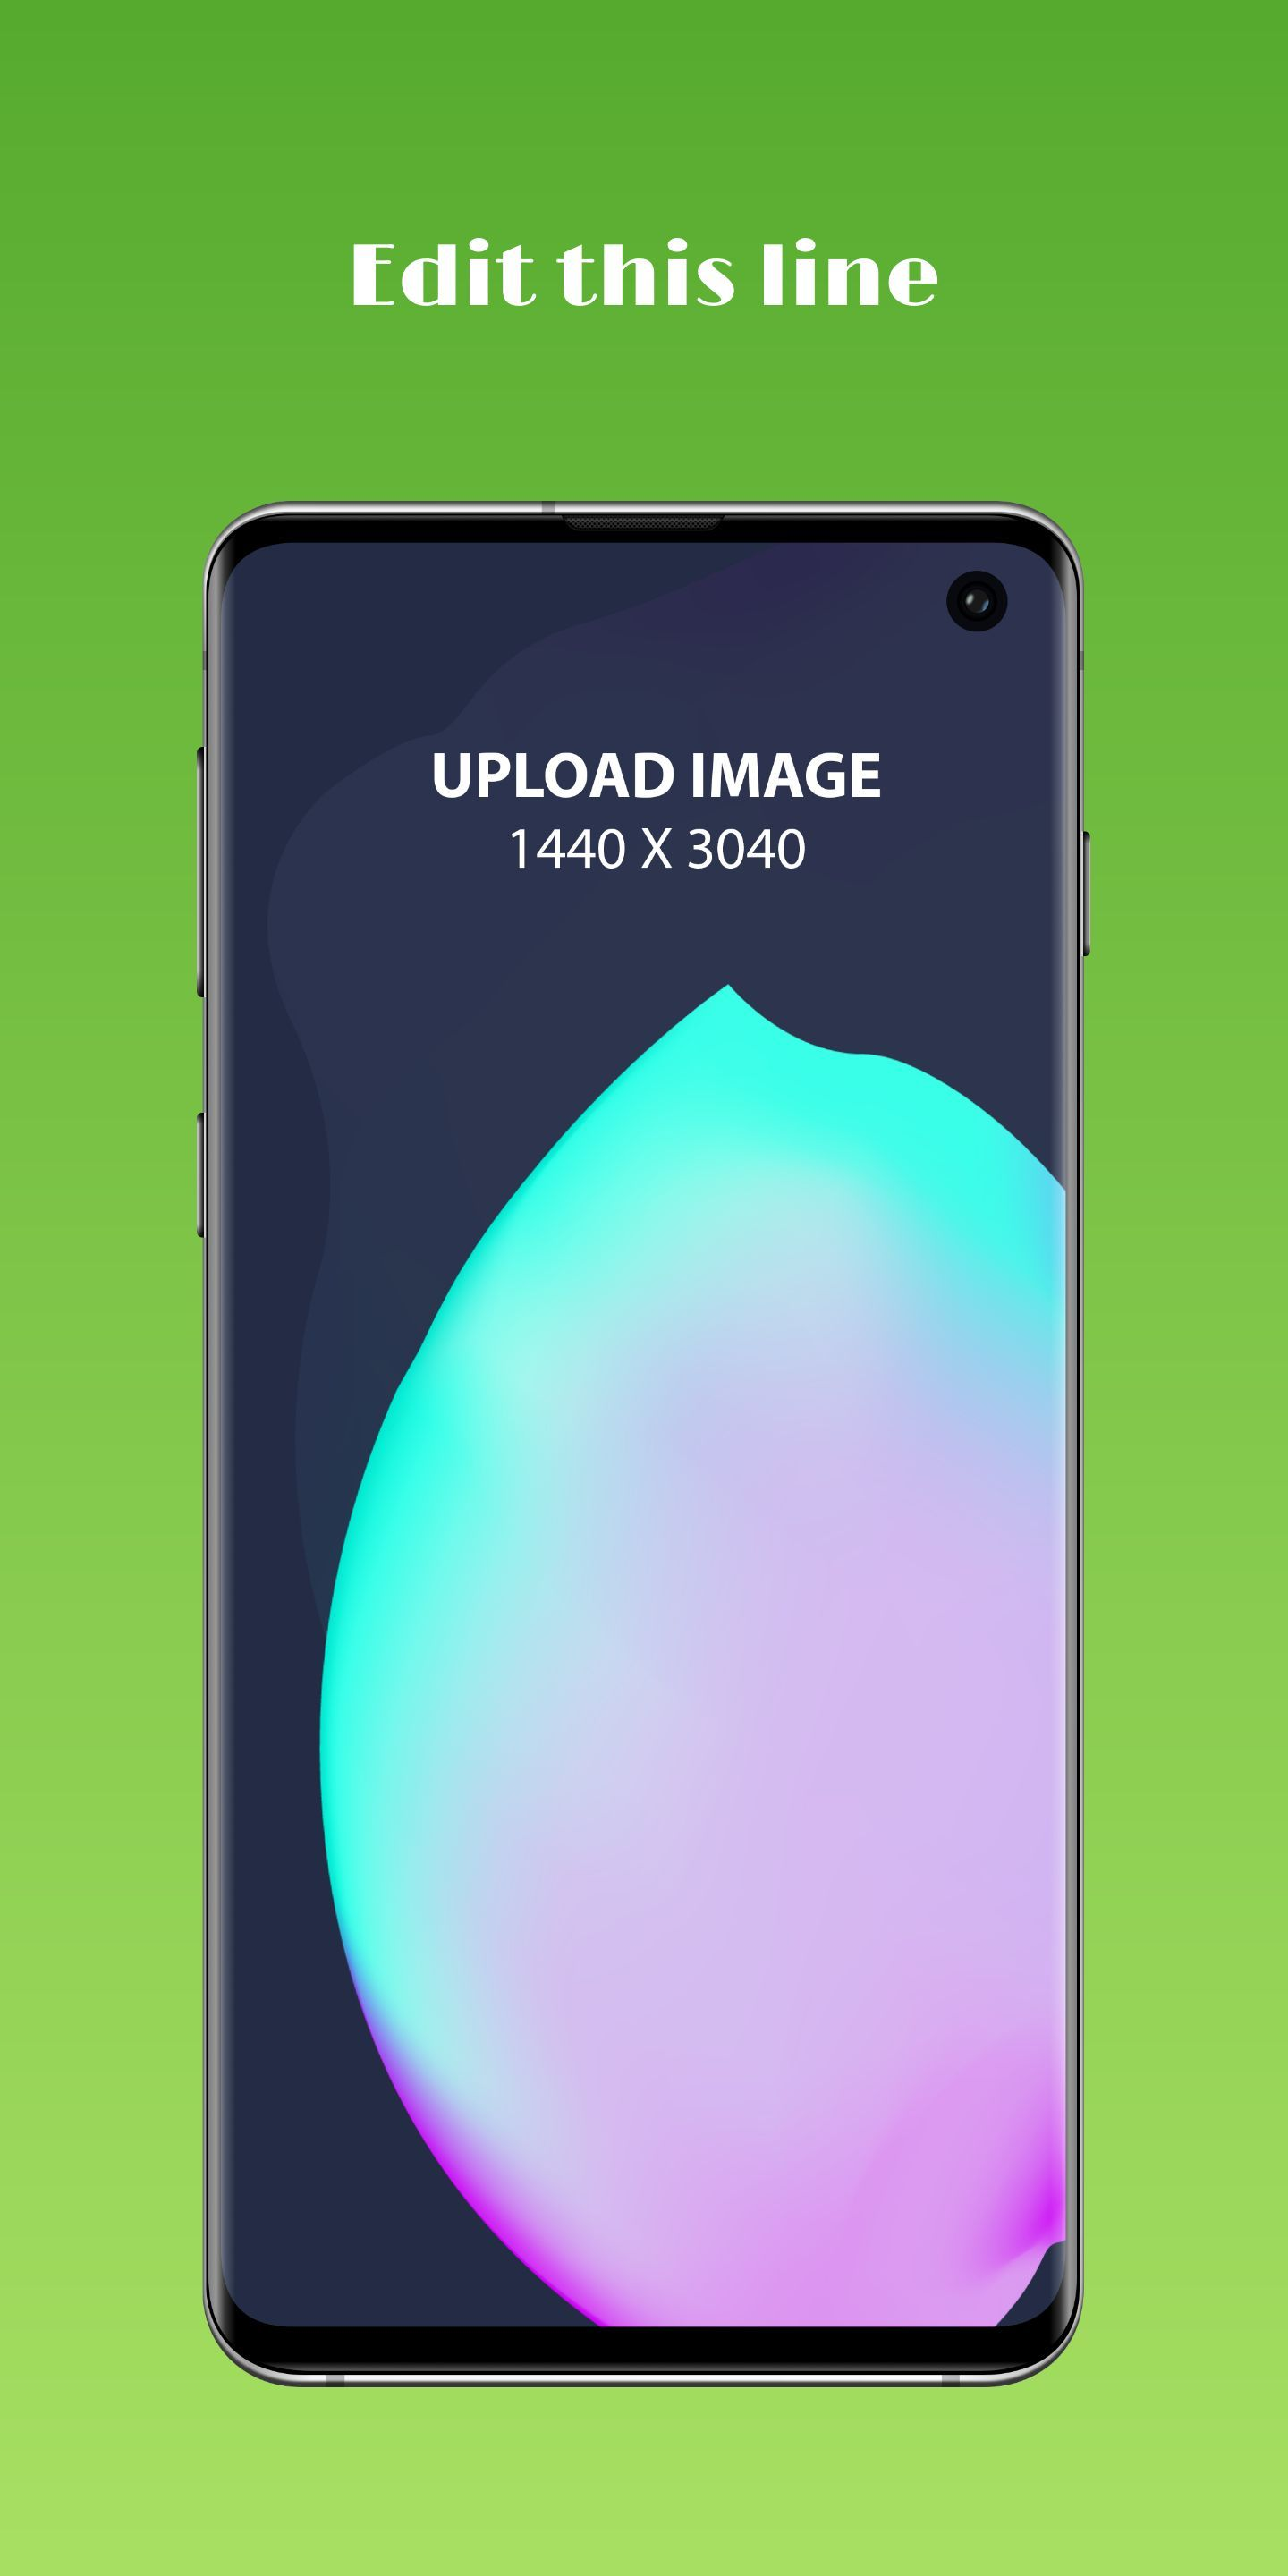 Samsung S10 Screenshot 58 template. Quickly edit text, colors, images, and more for free.